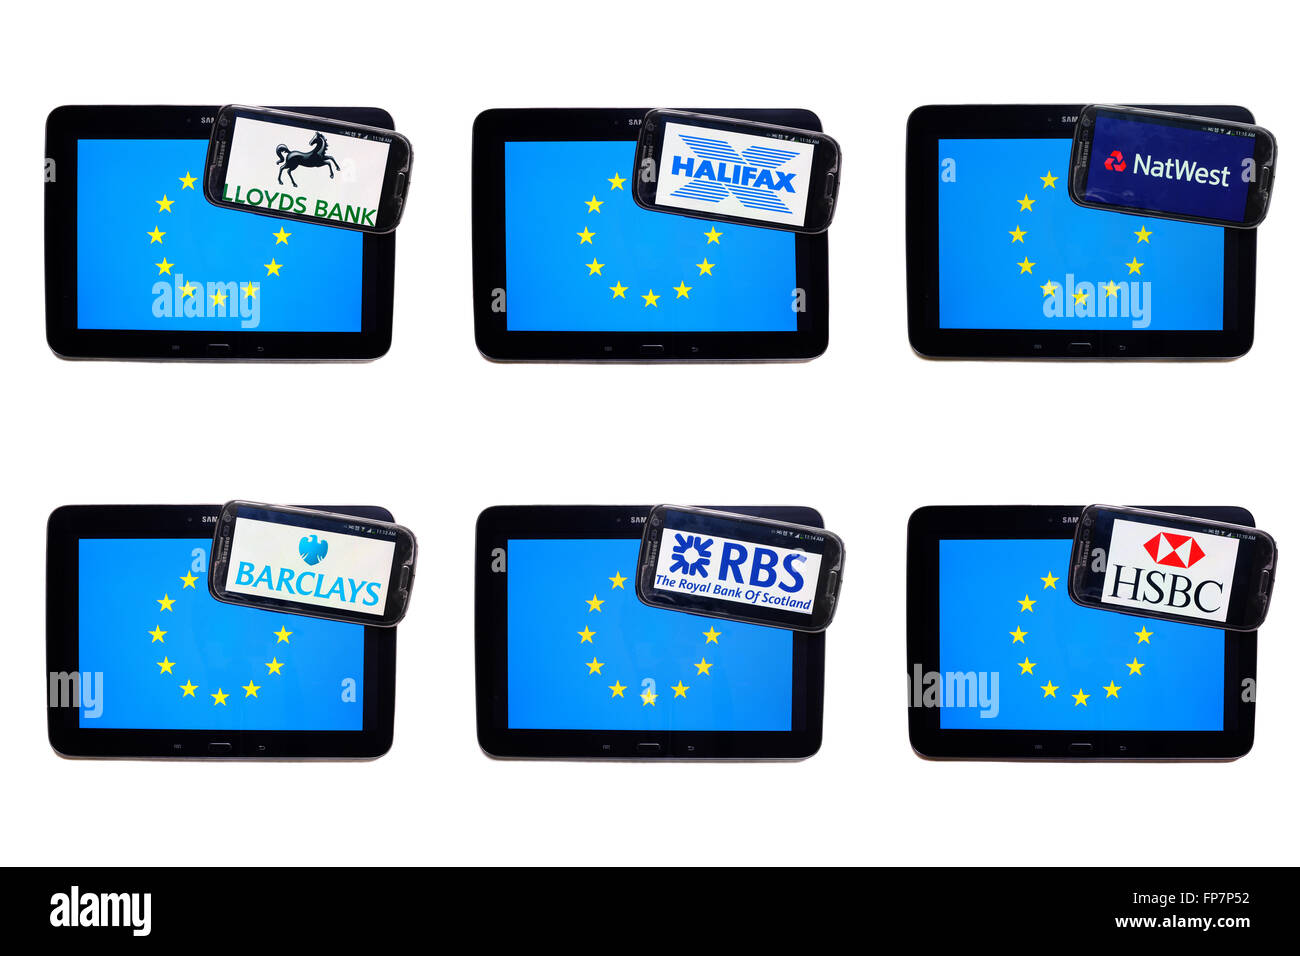 The logos of British banks on the screens of smartphones displayed on top of the EU flag. - Stock Image